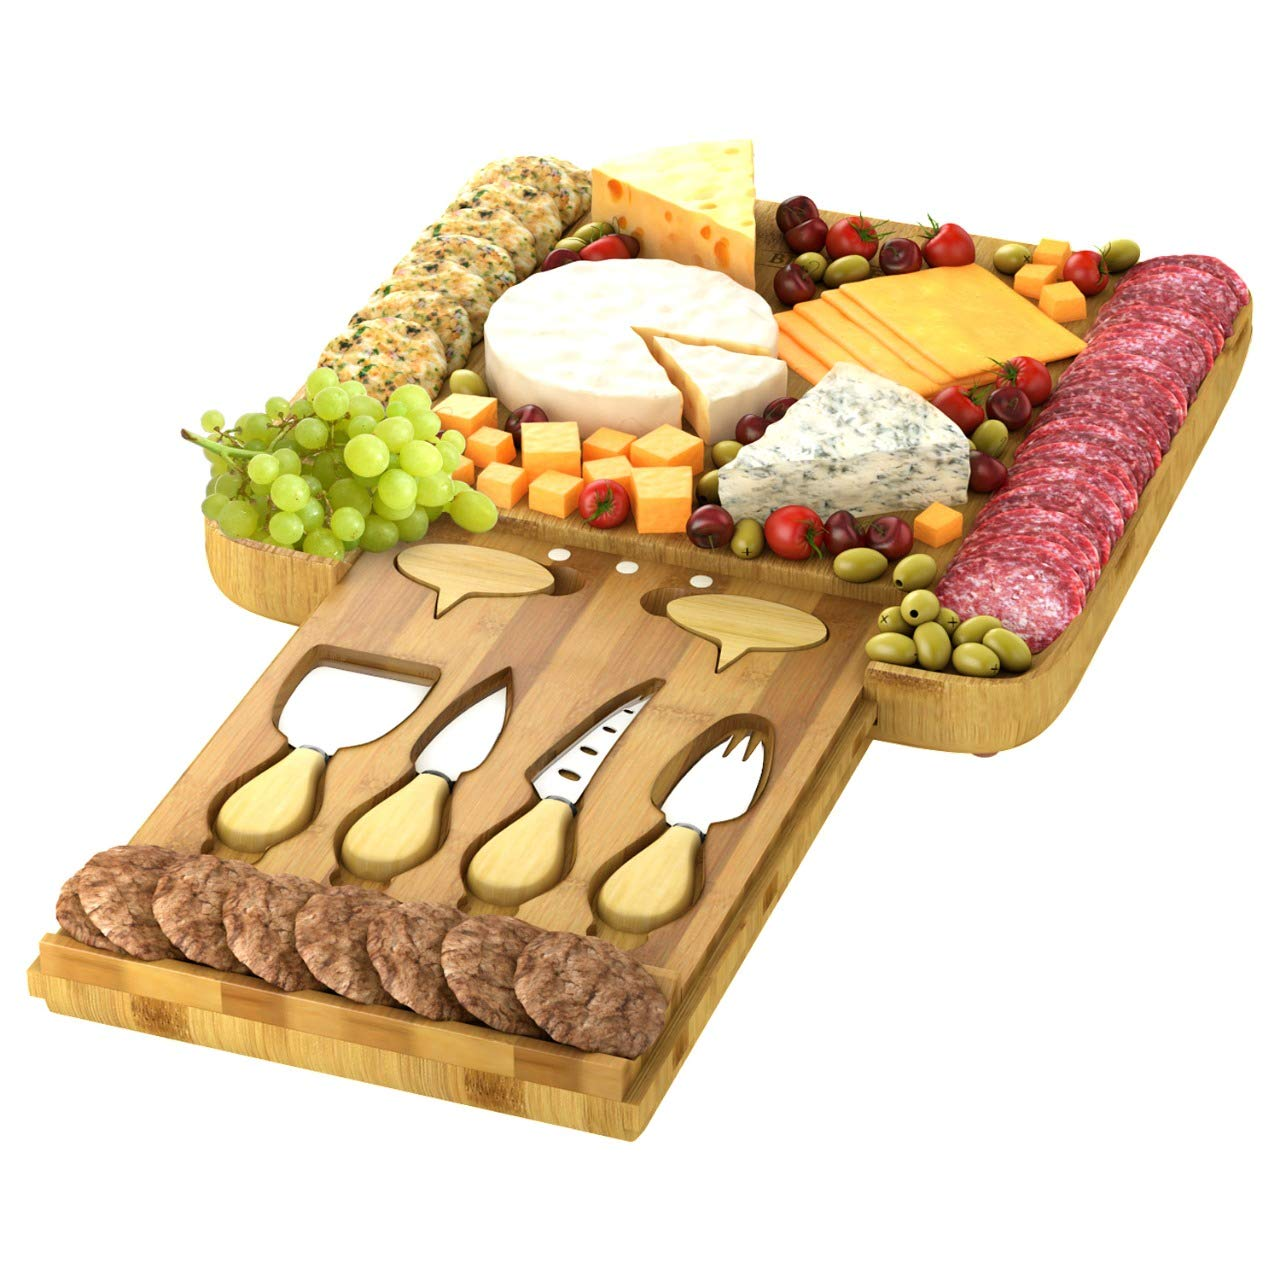 Cheese Board Set - Large Charcuterie Bamboo Serving Tray Platter with 4 Knives & Cheese Markers - Perfect Gift Idea by Bioexcel Cheese Board